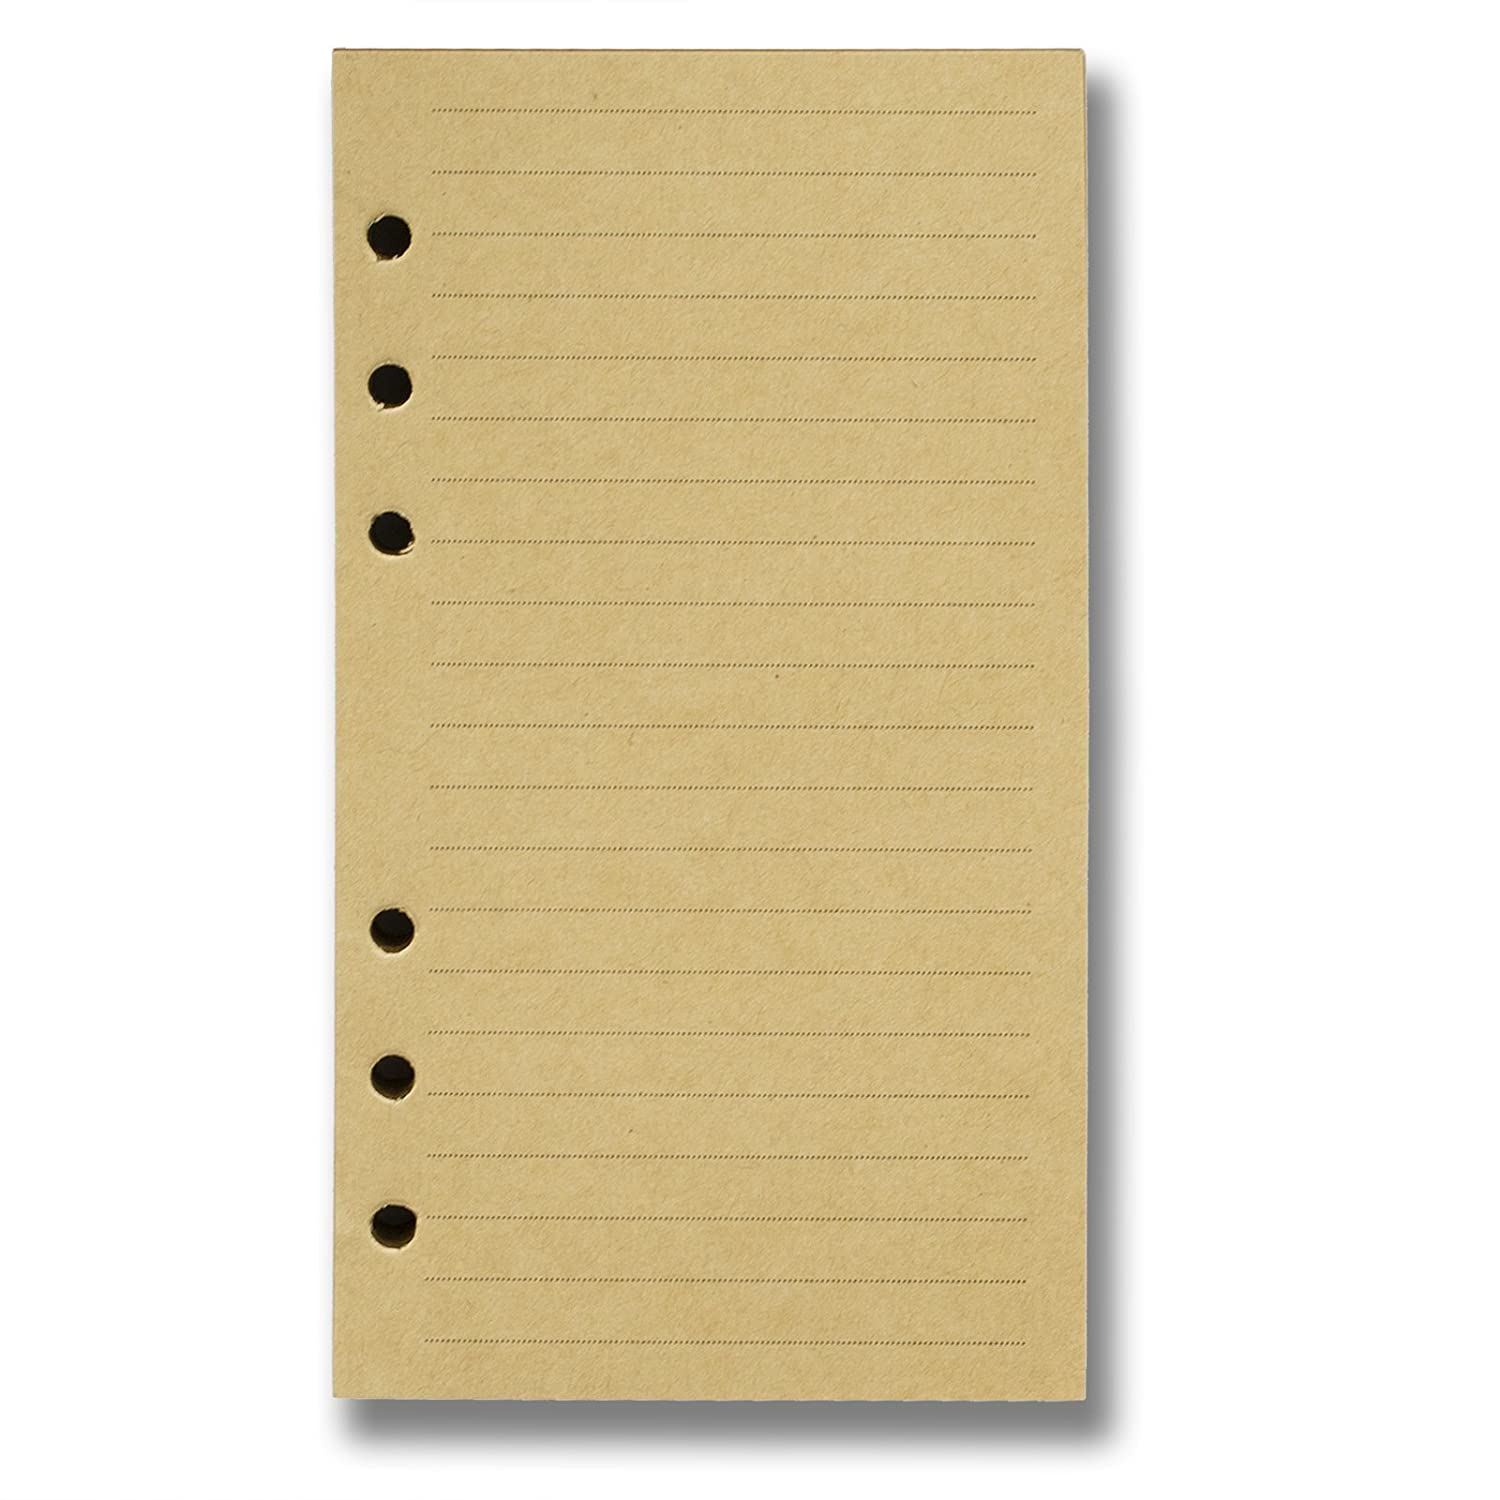 Refills 6 Hole Blank Craft Paper for A6 Loose Leaf Binder Notebook 3.75 X 6.75 Inches 100 sheets / 200 pages C&L Workshop